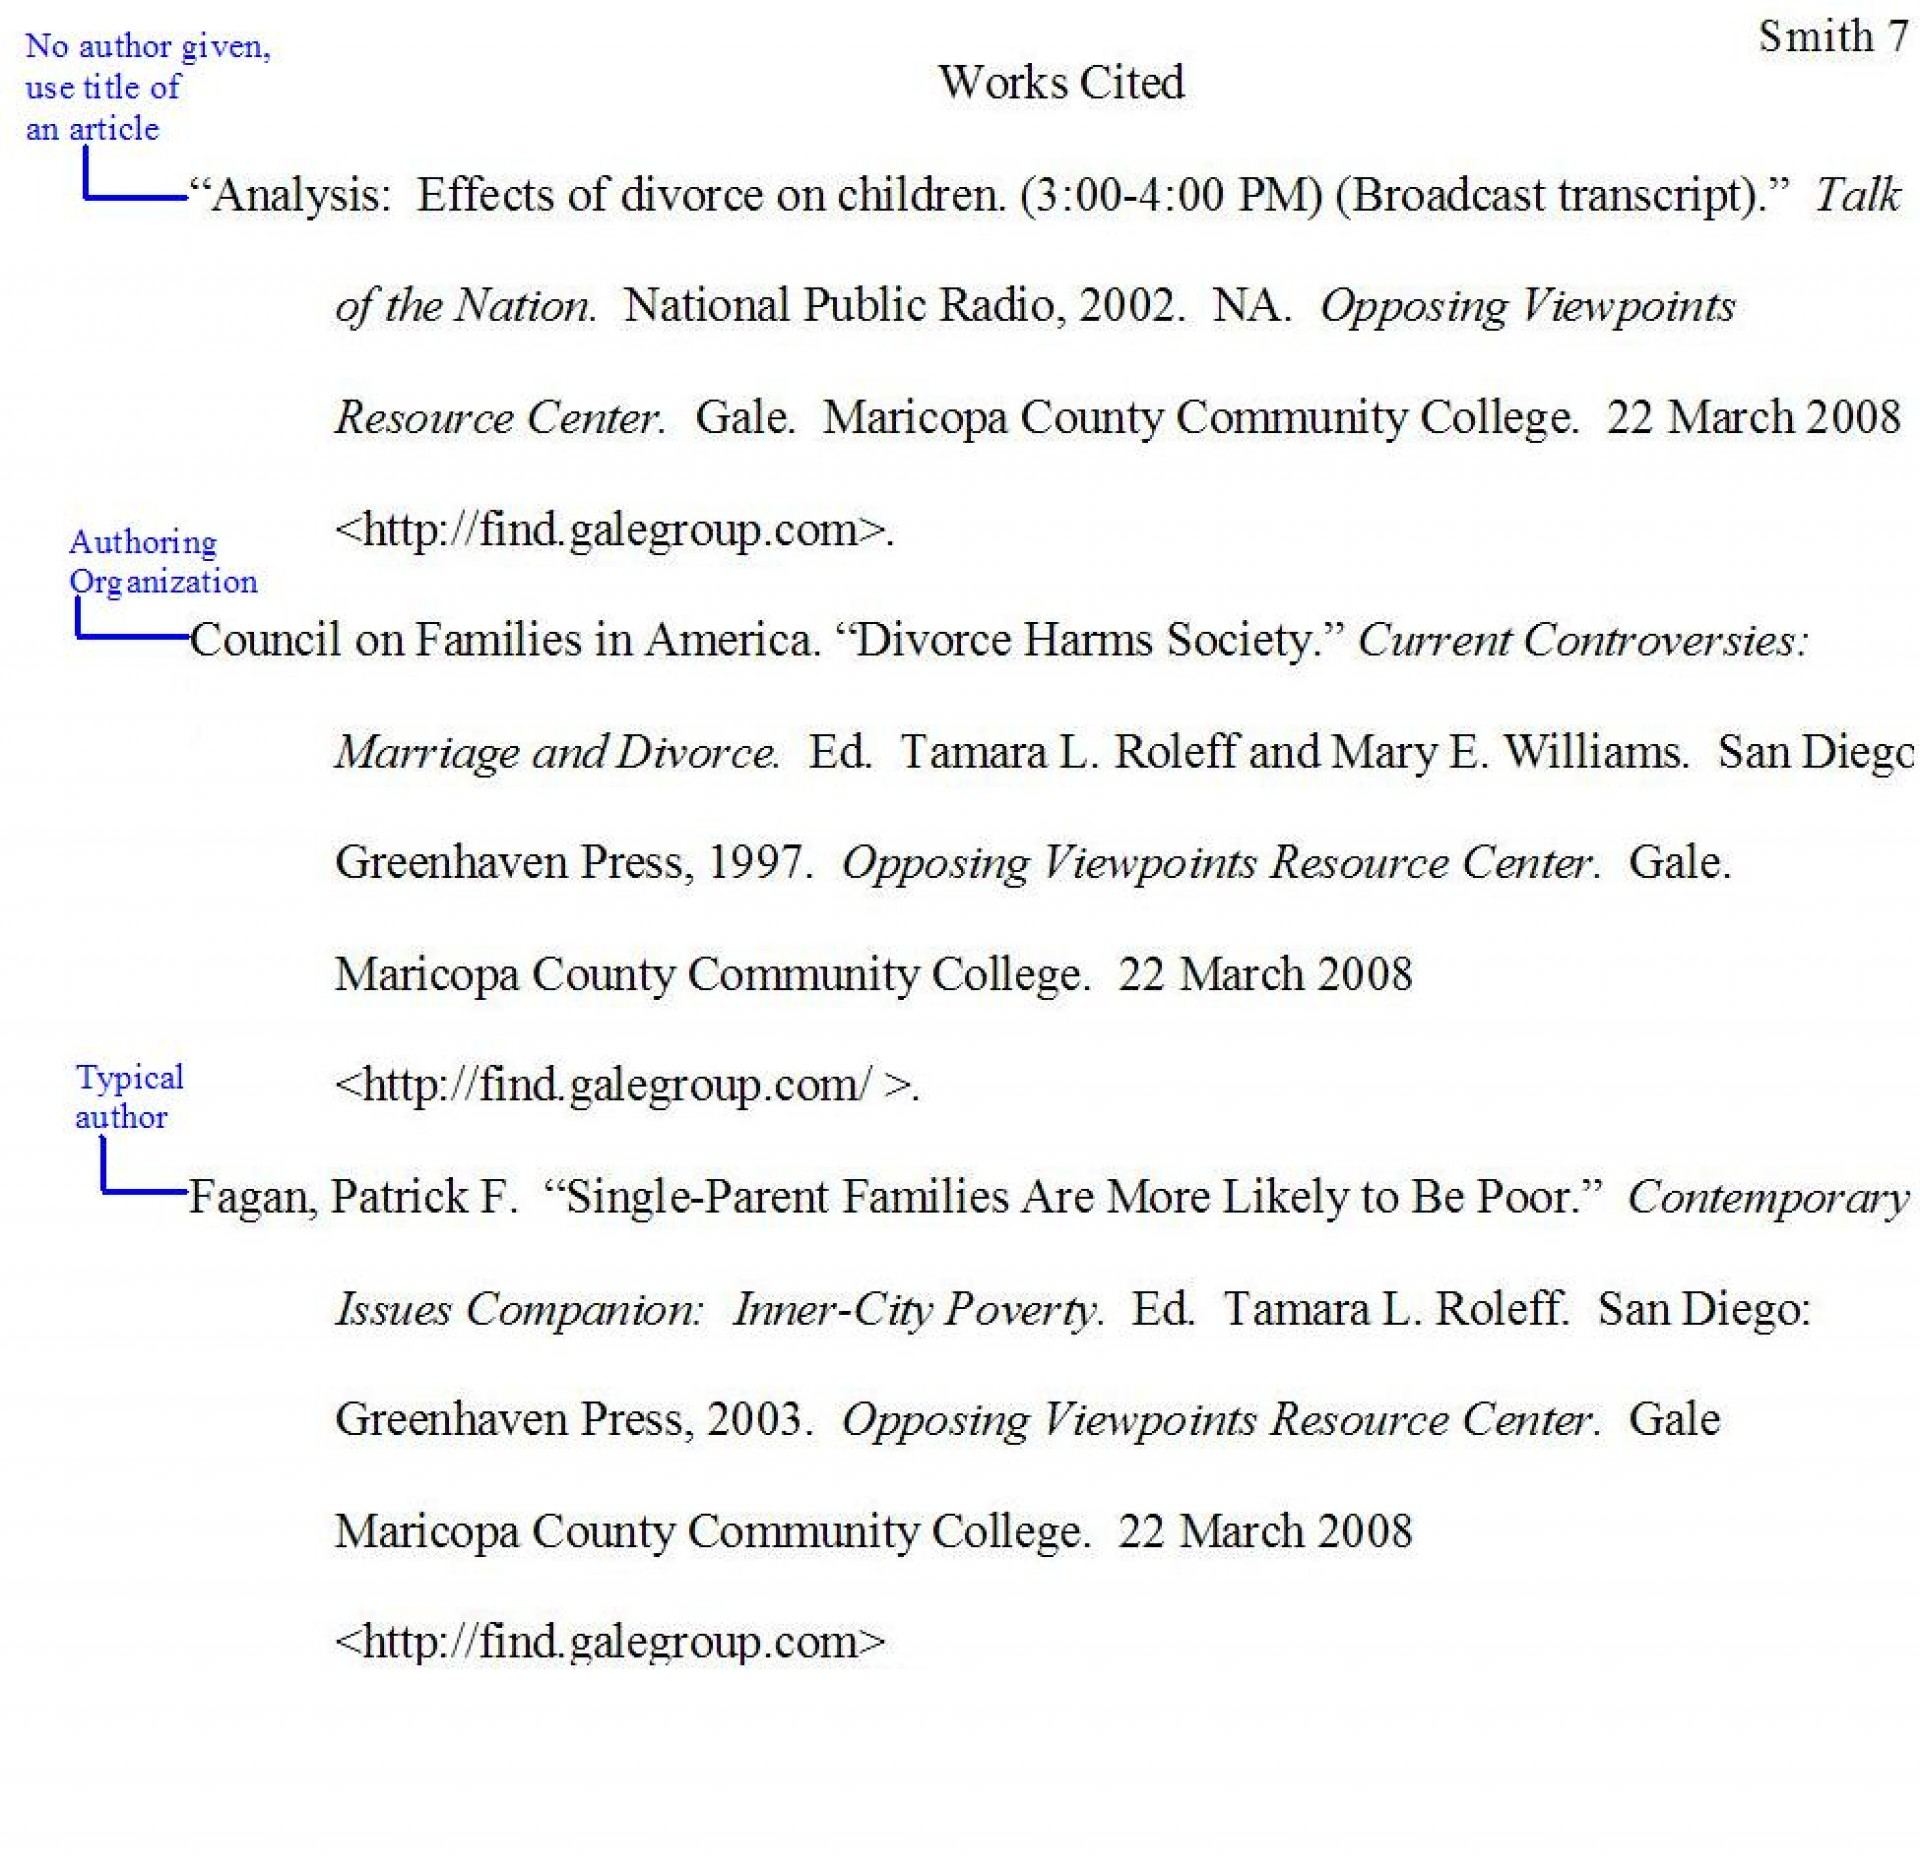 010 Format For Research Paper References Samplewrkctd Awesome Layout Of A Apa Style Outline Example 1920